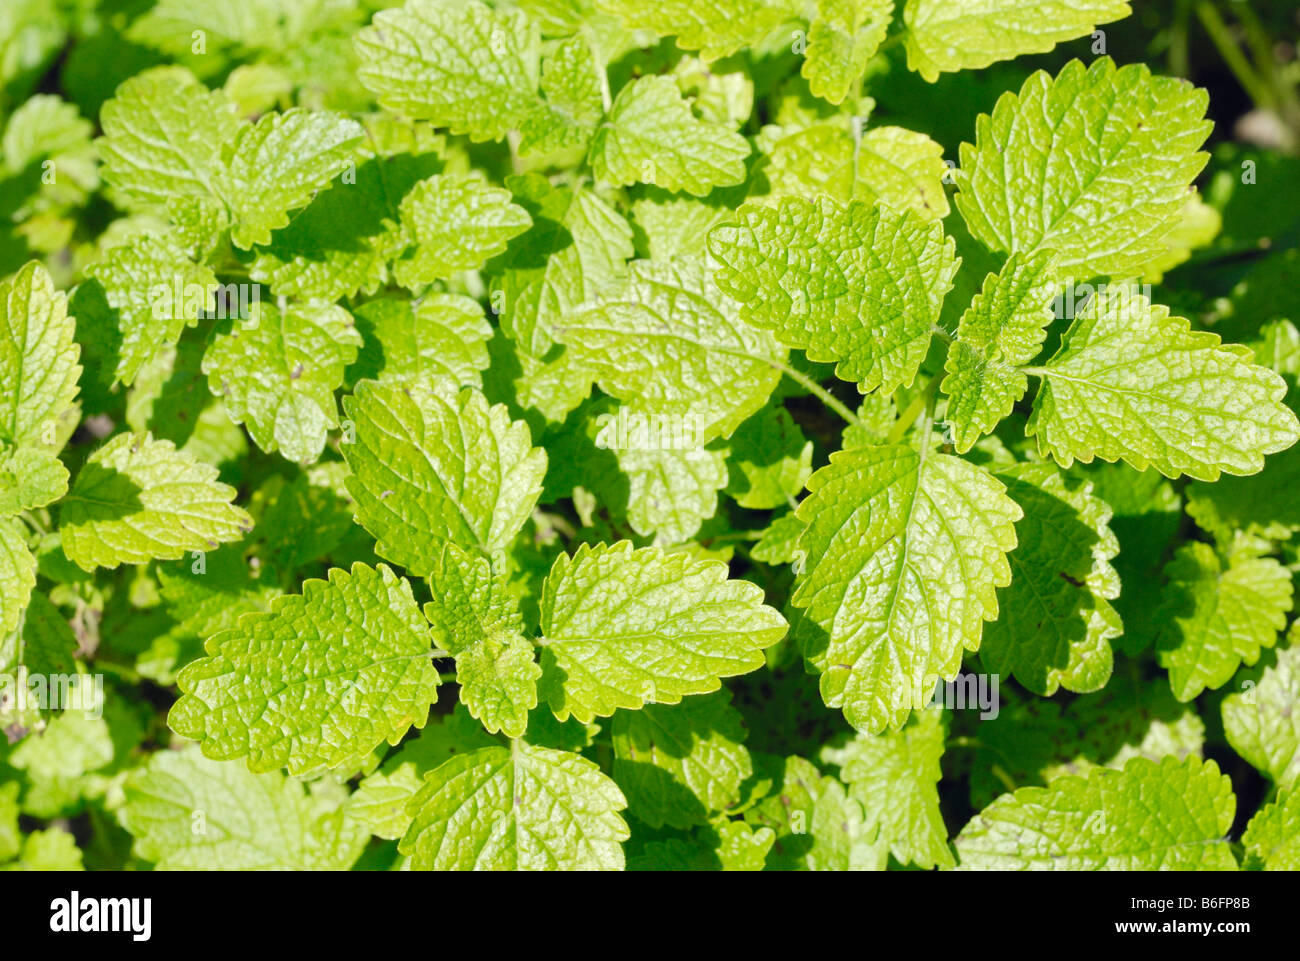 Light yellow leaves of the Lemon balm (Melissa officinalis) plant Stock Photo